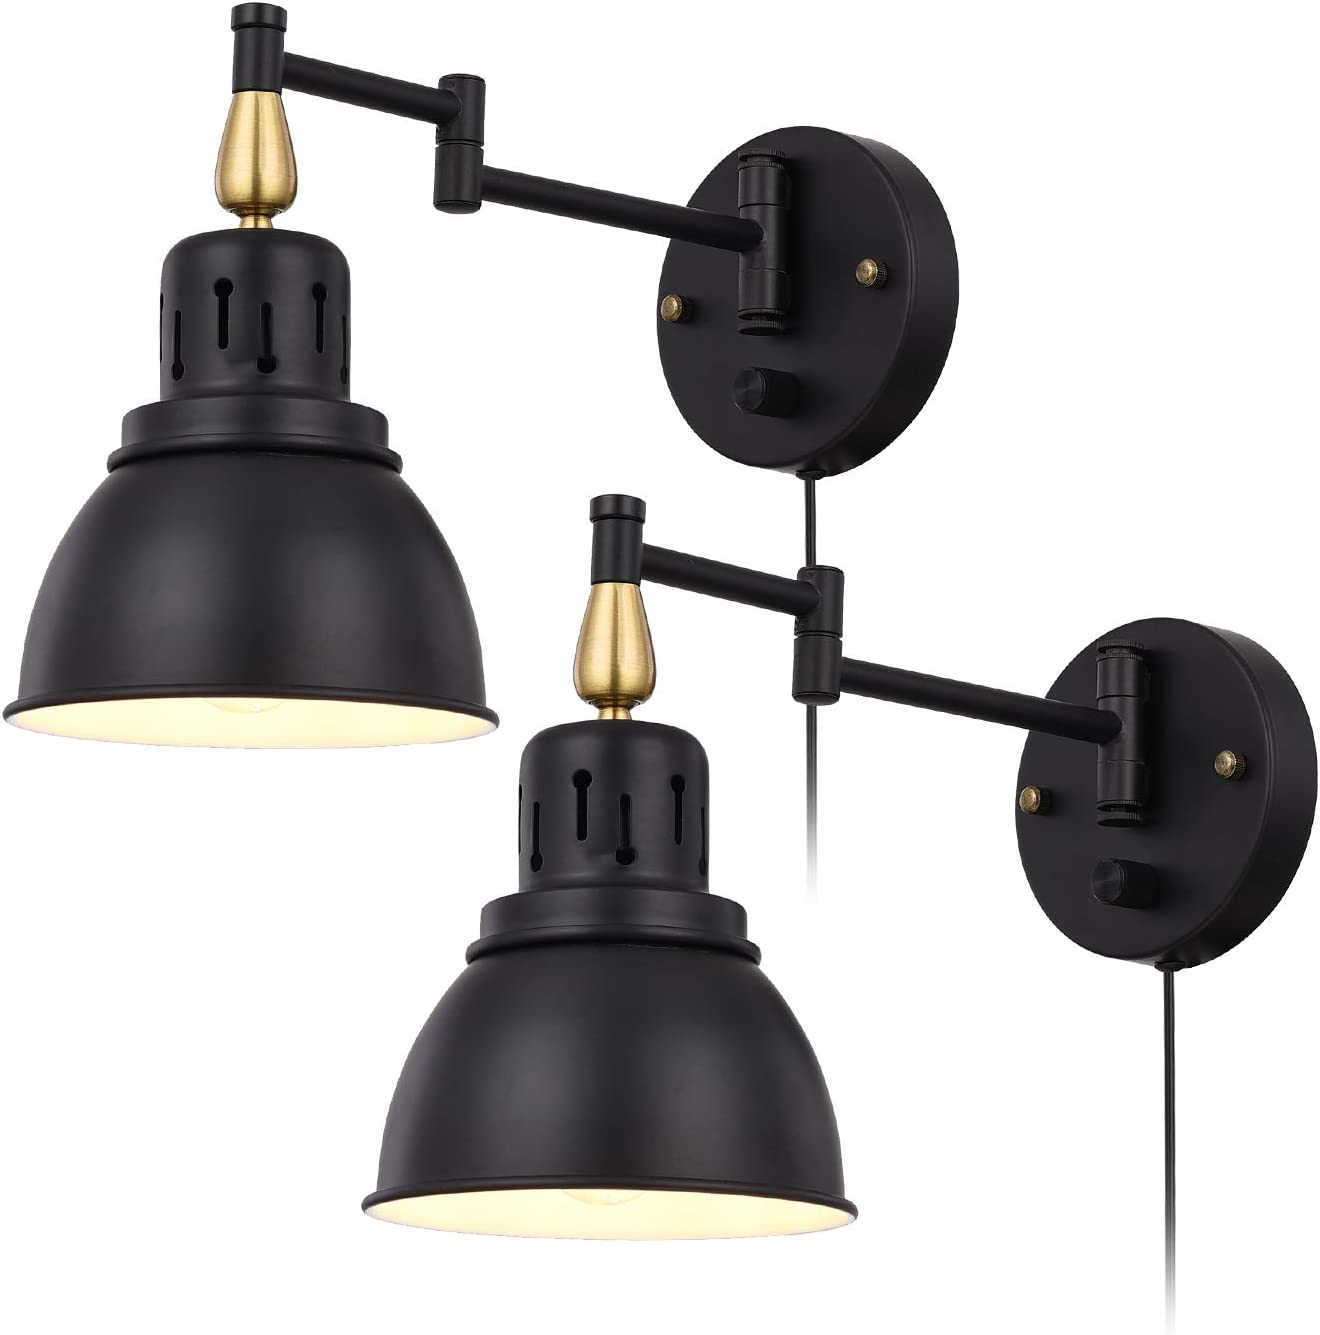 Trlife Plug In Wall Sconces Set Of 2 Dimmable Swing Arm Wall Lights Wall Sconce Lighting Wall Mounted Light With 6ft Plug In Cord And On Off Switch E26 Base Ul Listed Wall Lamps Sconces Amazon Canada